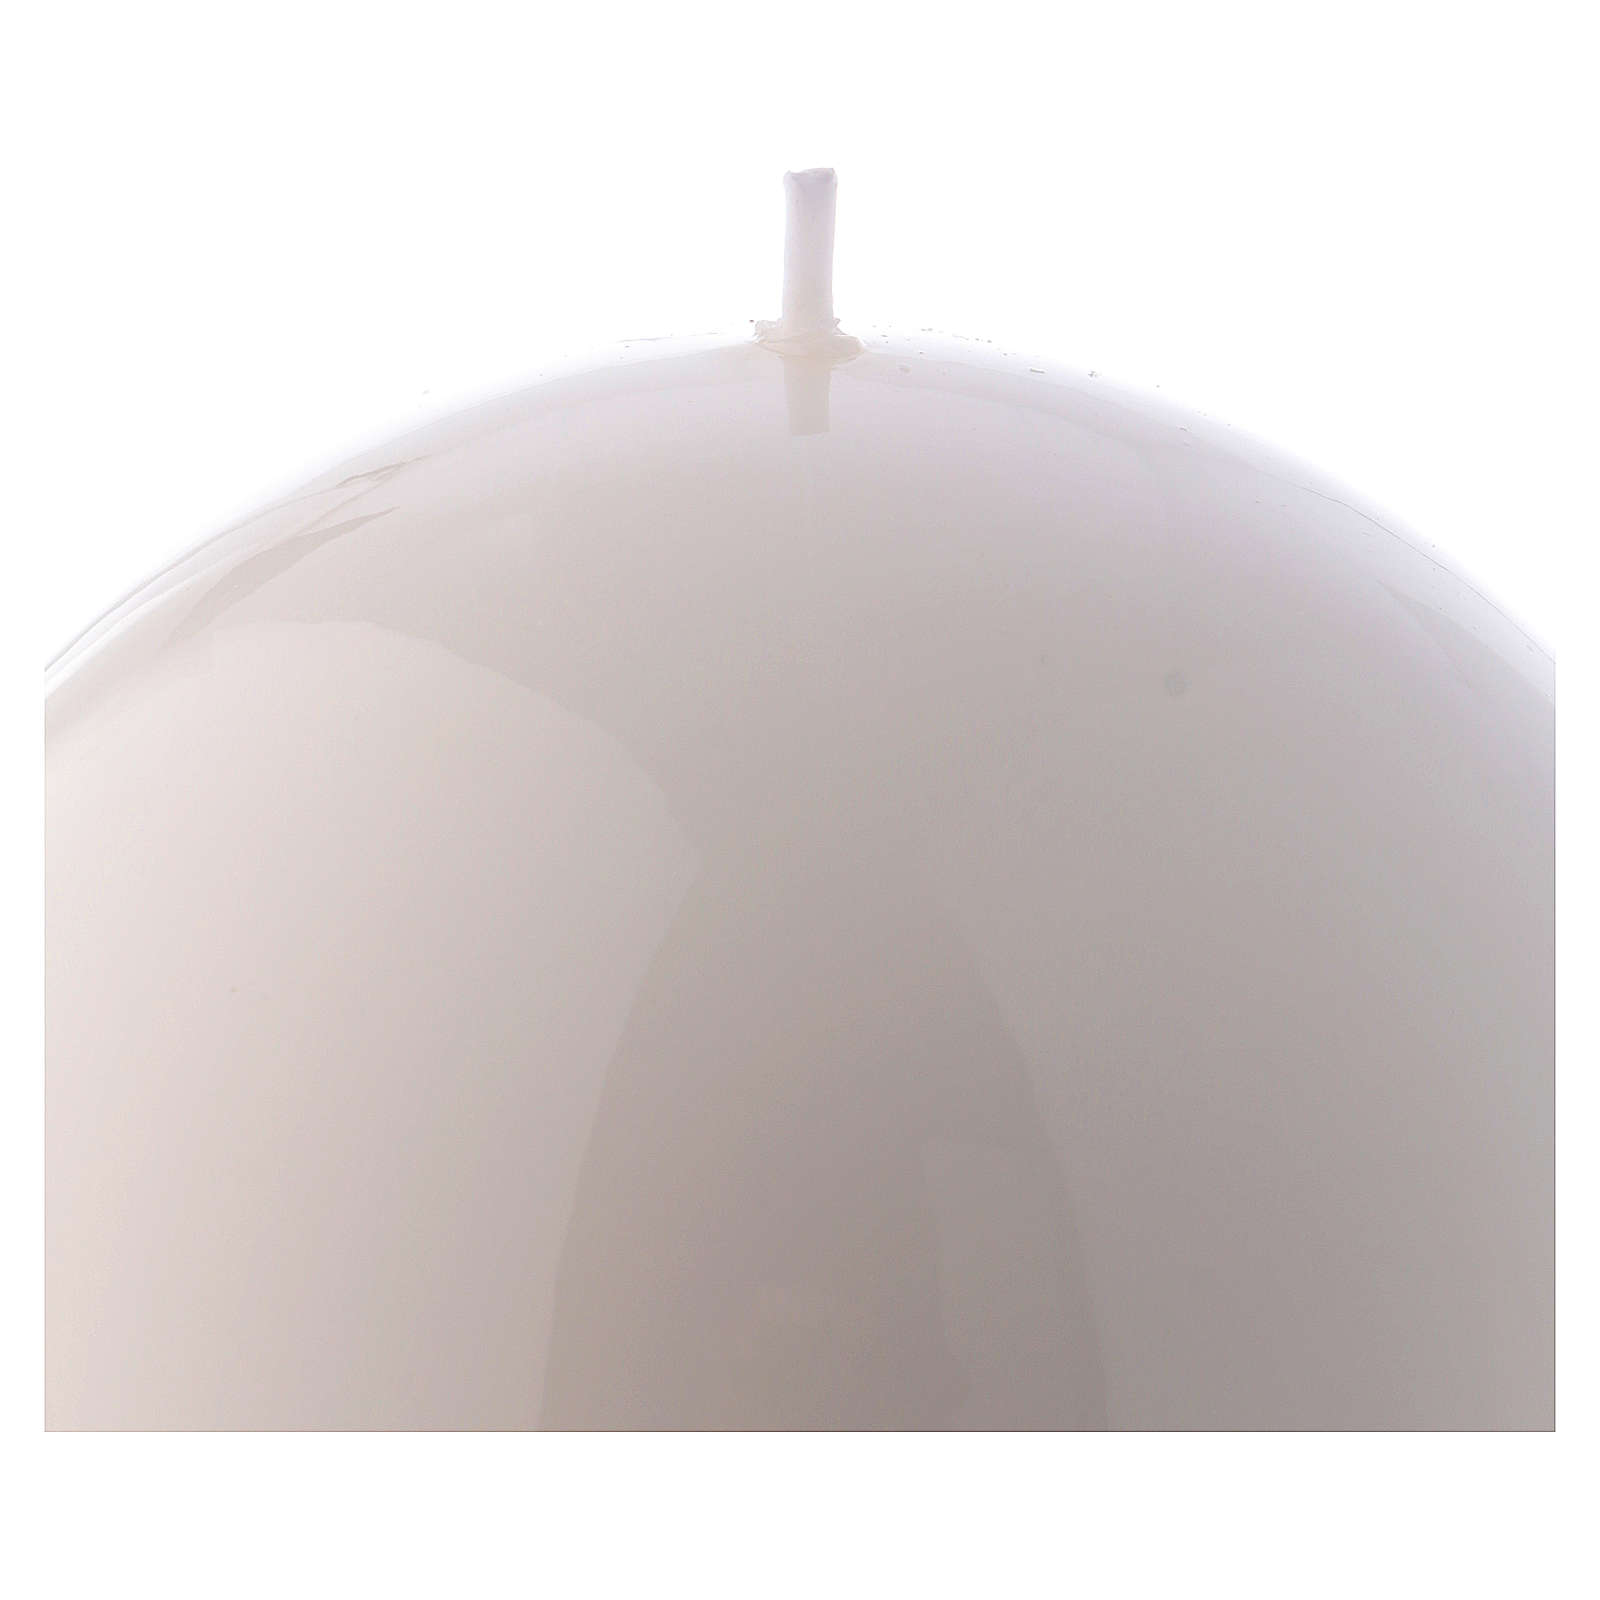 Spherical white Ceralacca candle diameter 12 cm 3